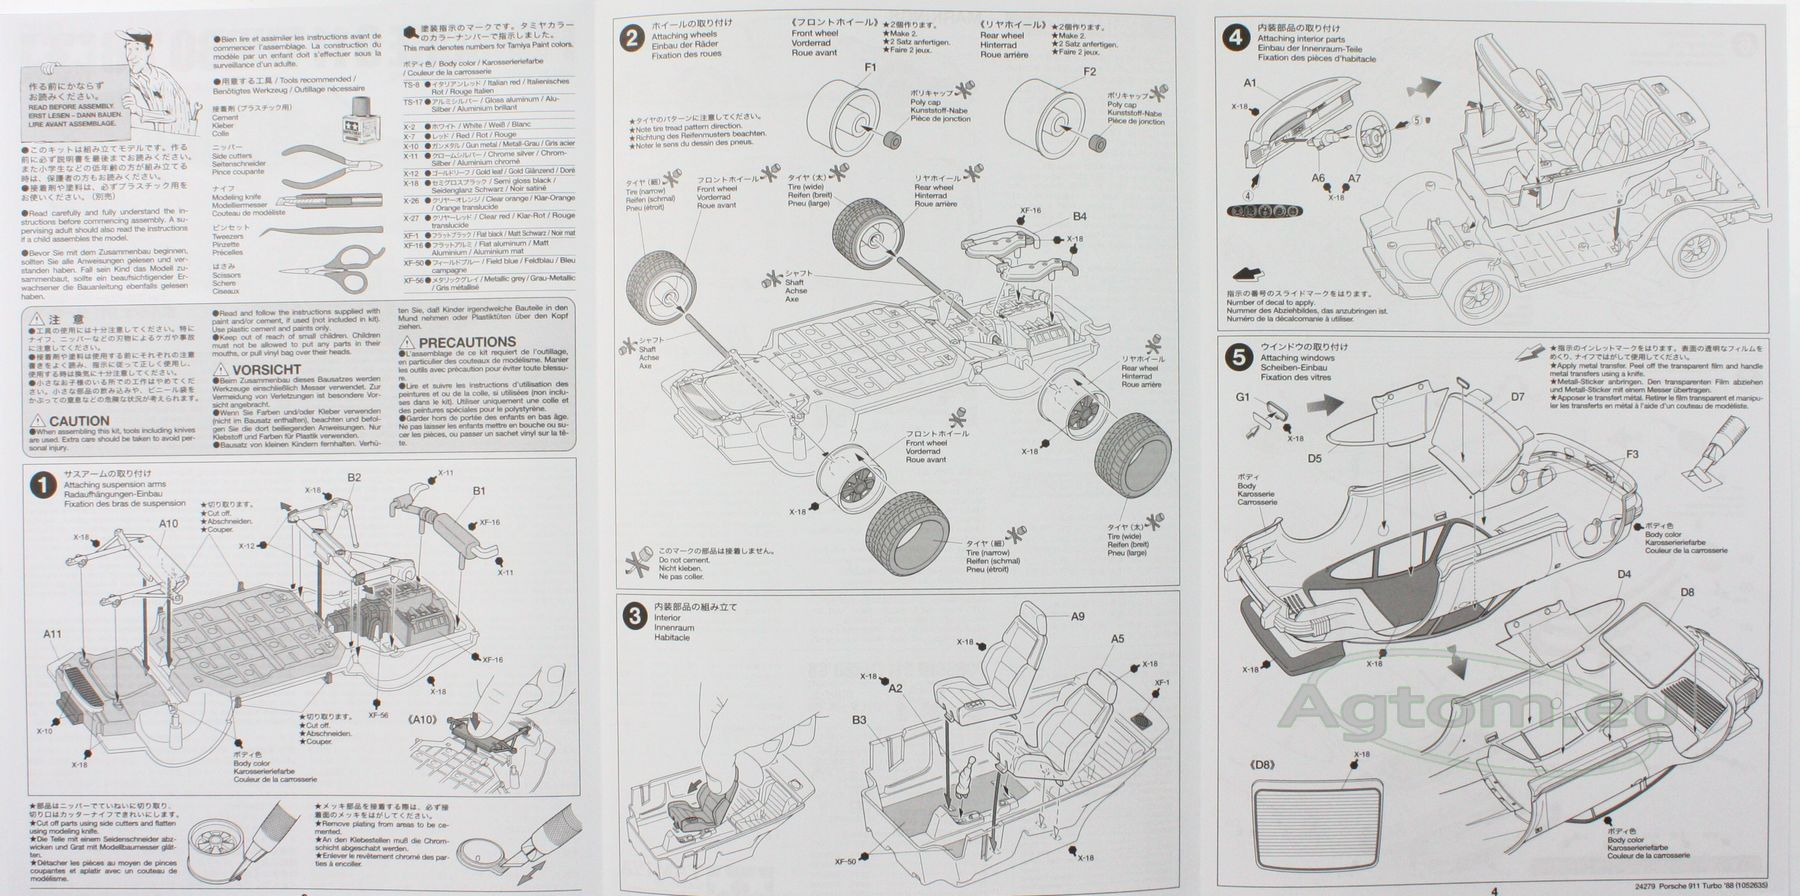 1969 porsche 911 ignition wiring diagram 1985 porsche 911